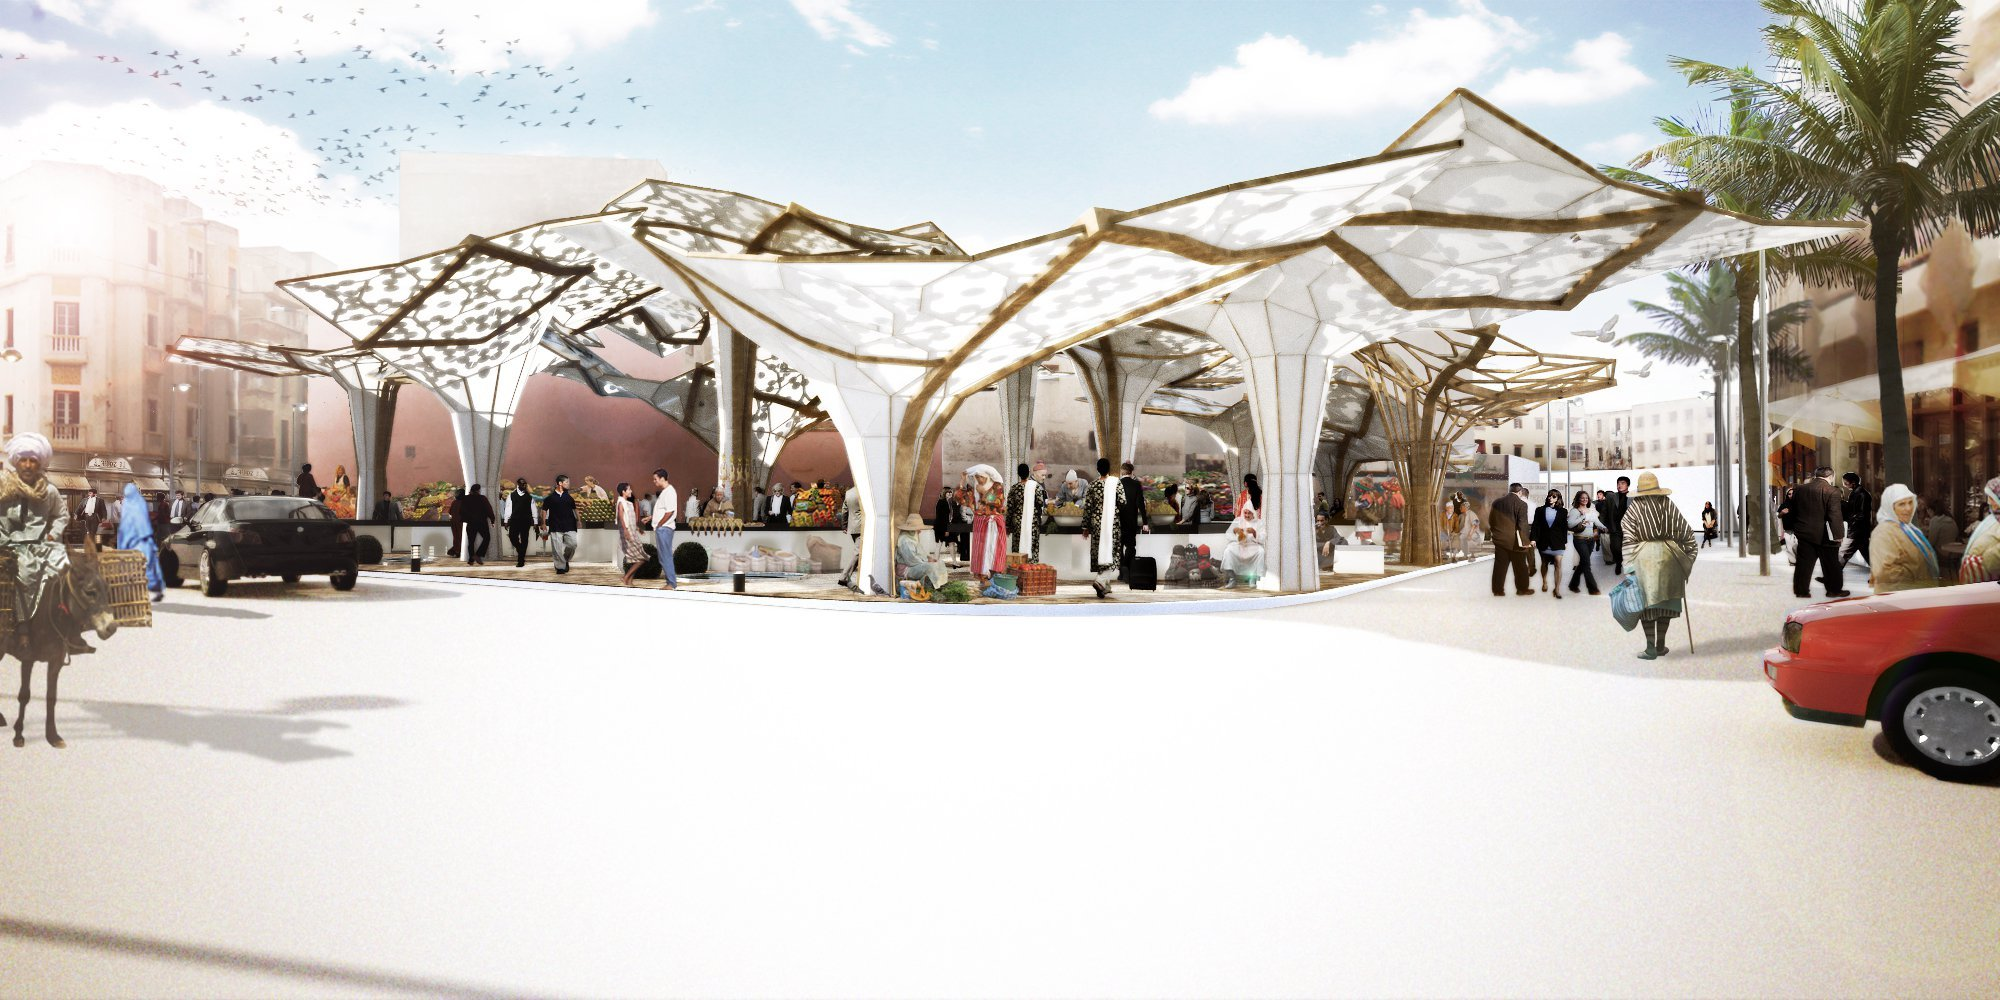 gallery of sustainable market square competition entry